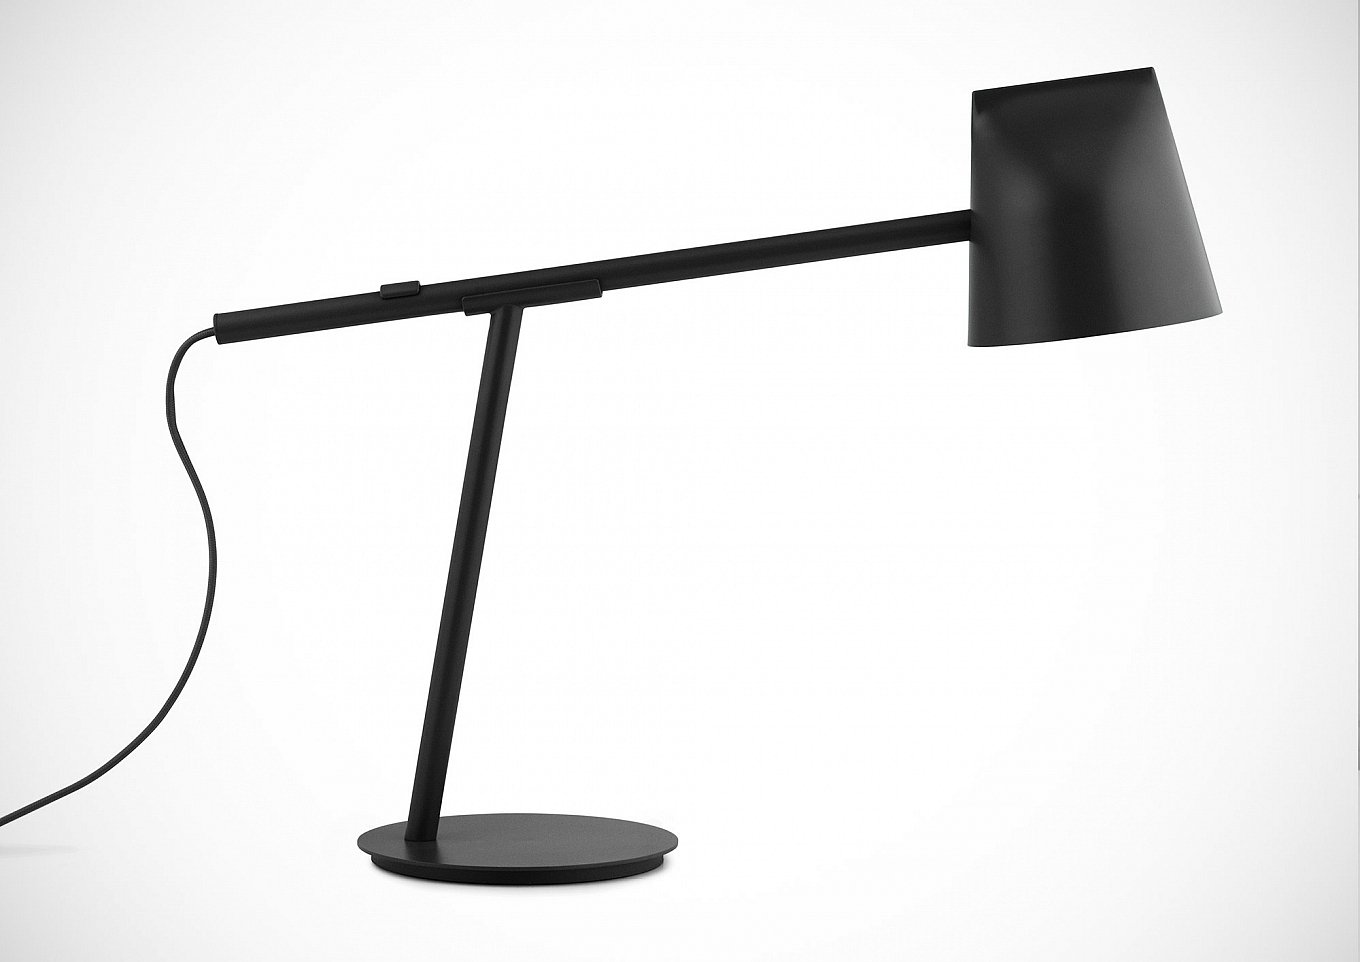 momento-desk-lamp-something-design-studio-1